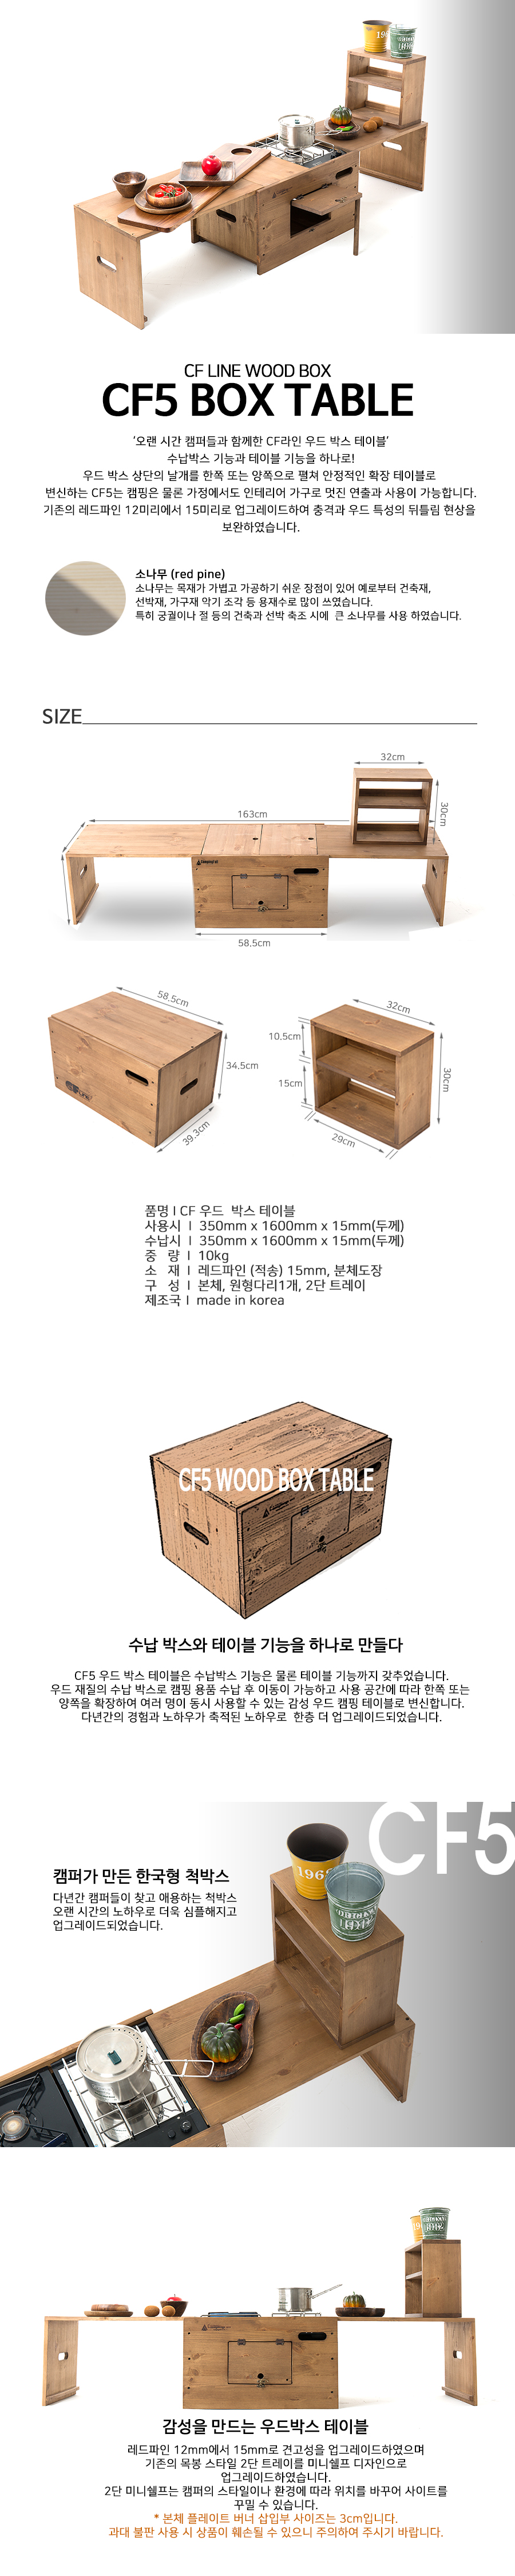 CF5 Wood Box Table 15mm.jpg